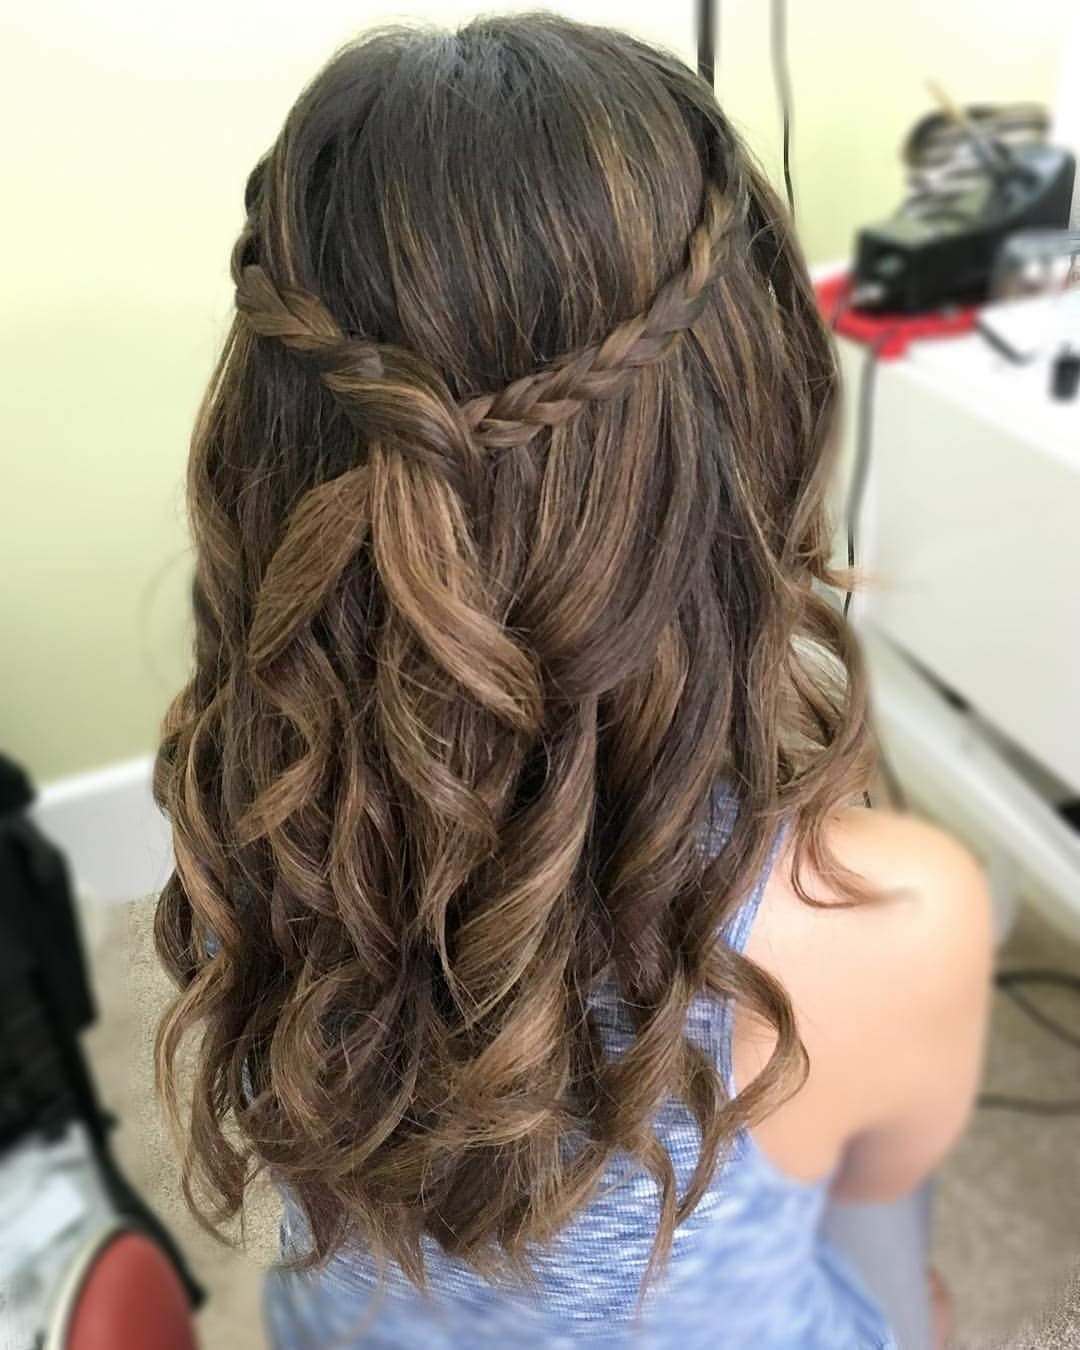 Awesome Graduation Party Hairstyle | Graduation Hairstyles Hairstyles For Graduation For Medium Length Hair